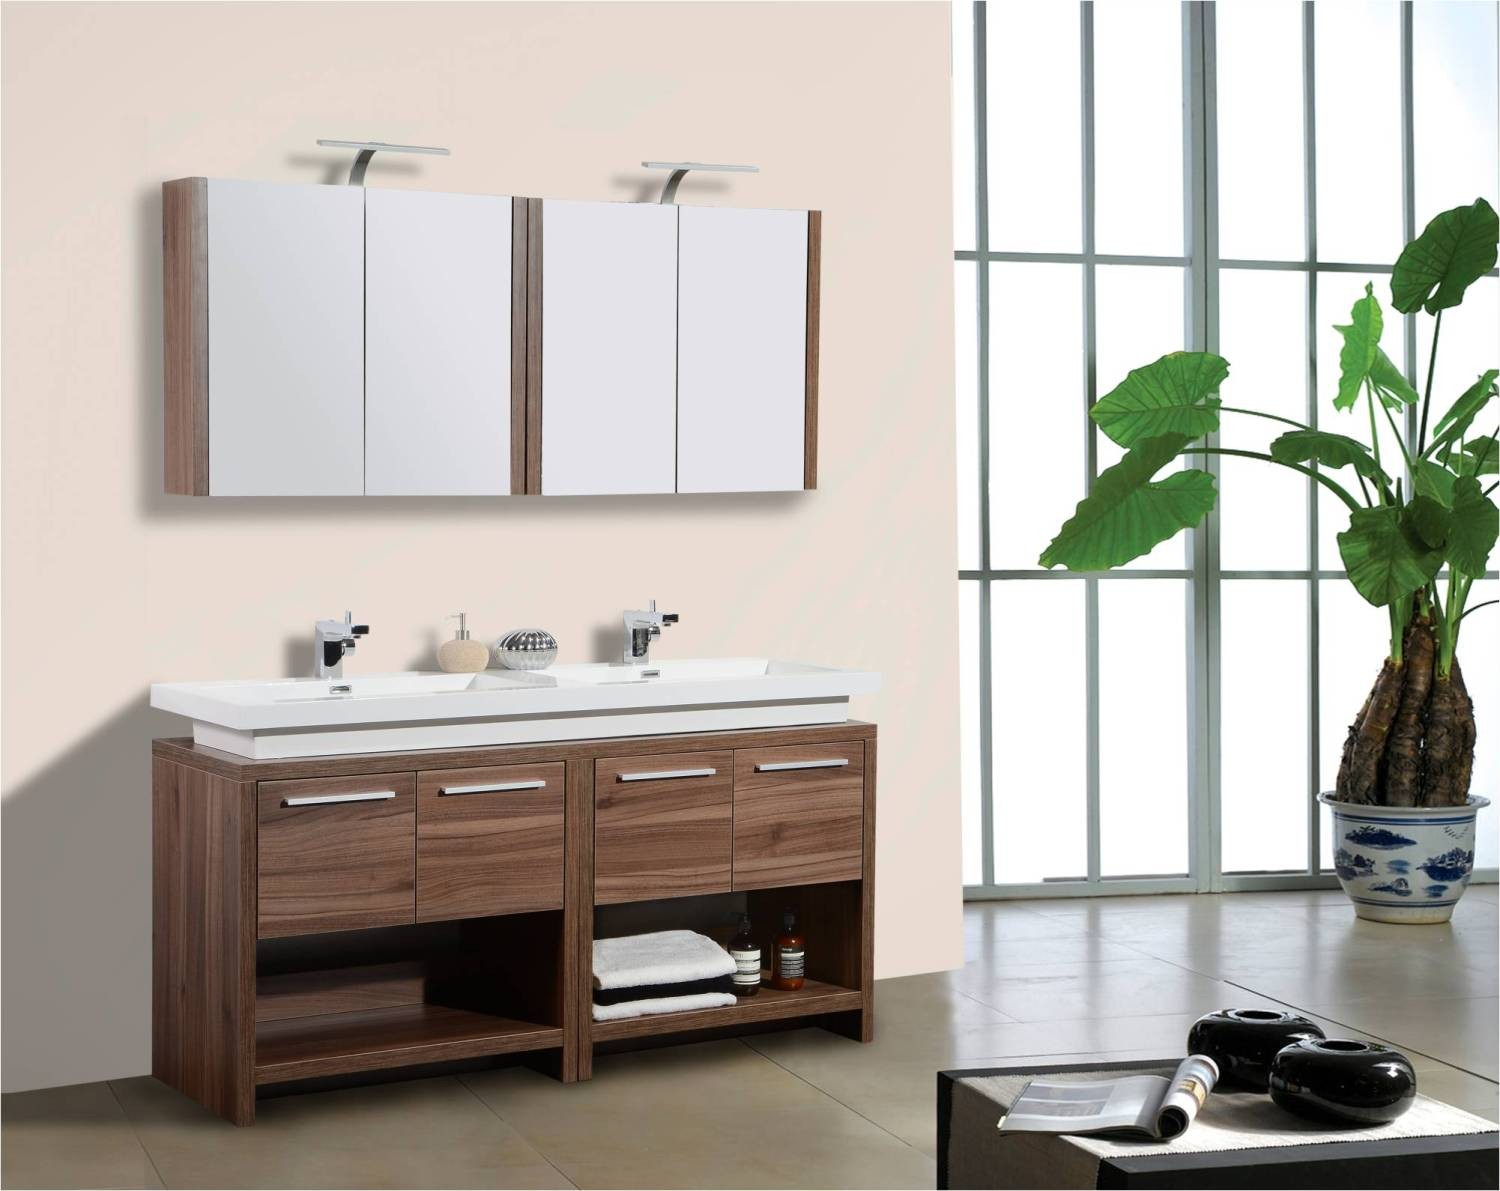 Bath trends coupons near me in fort lauderdale 8coupons for Local bathroom vanities